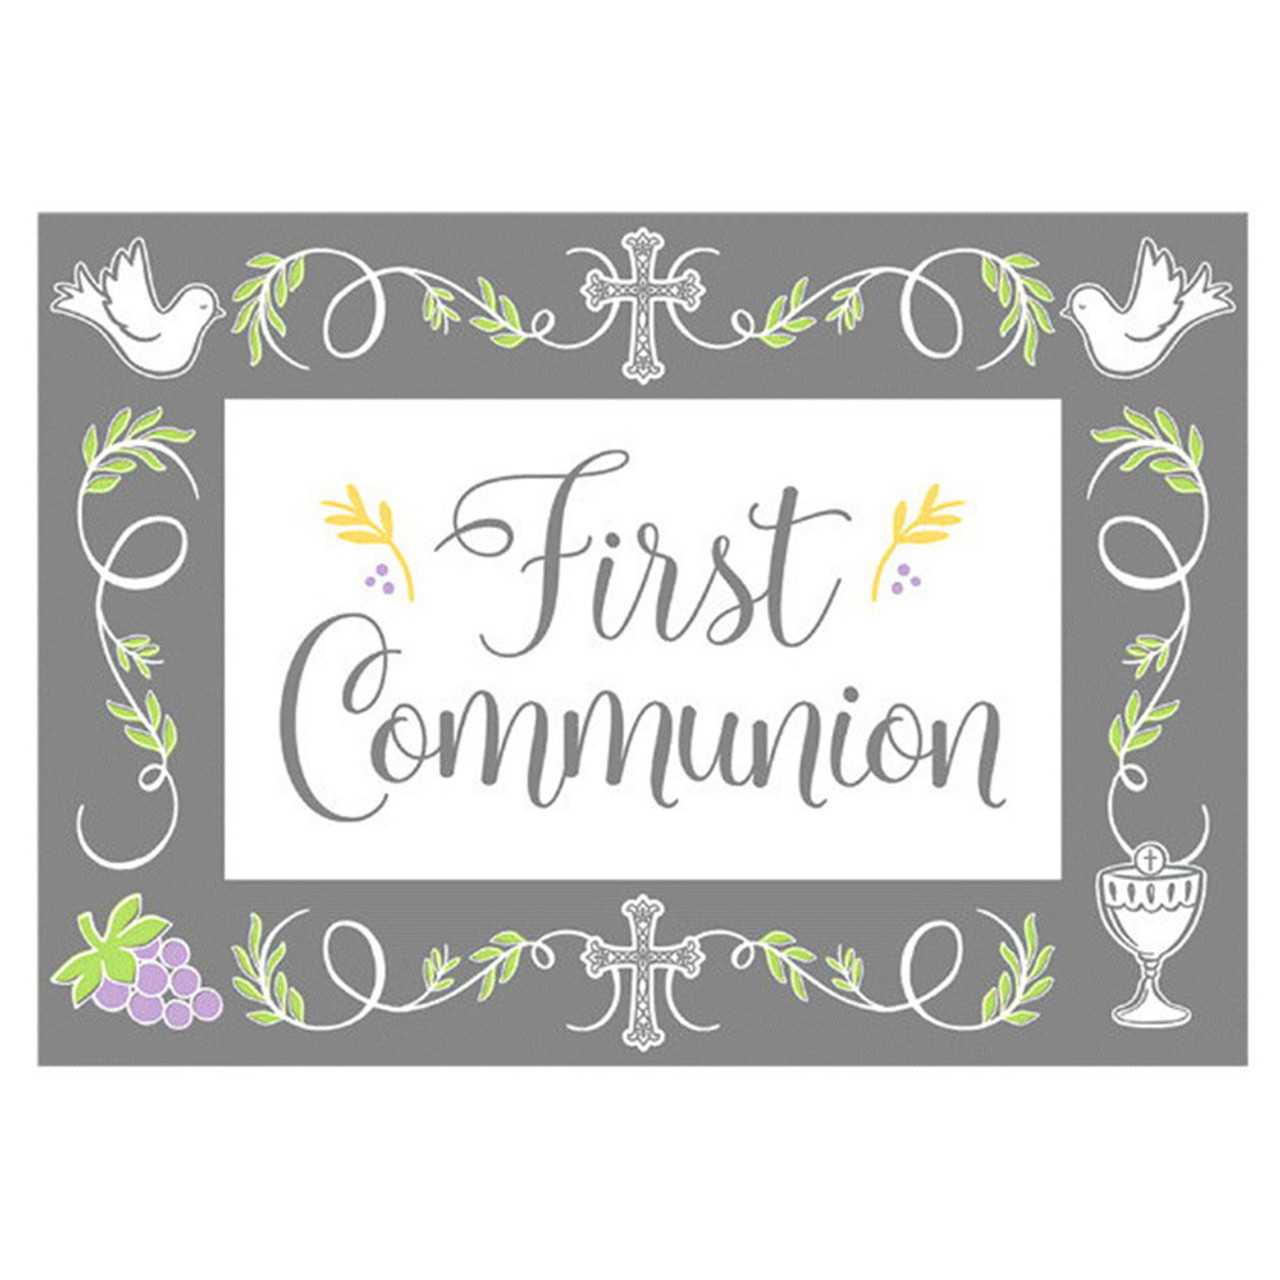 First Communion Blessing Cards